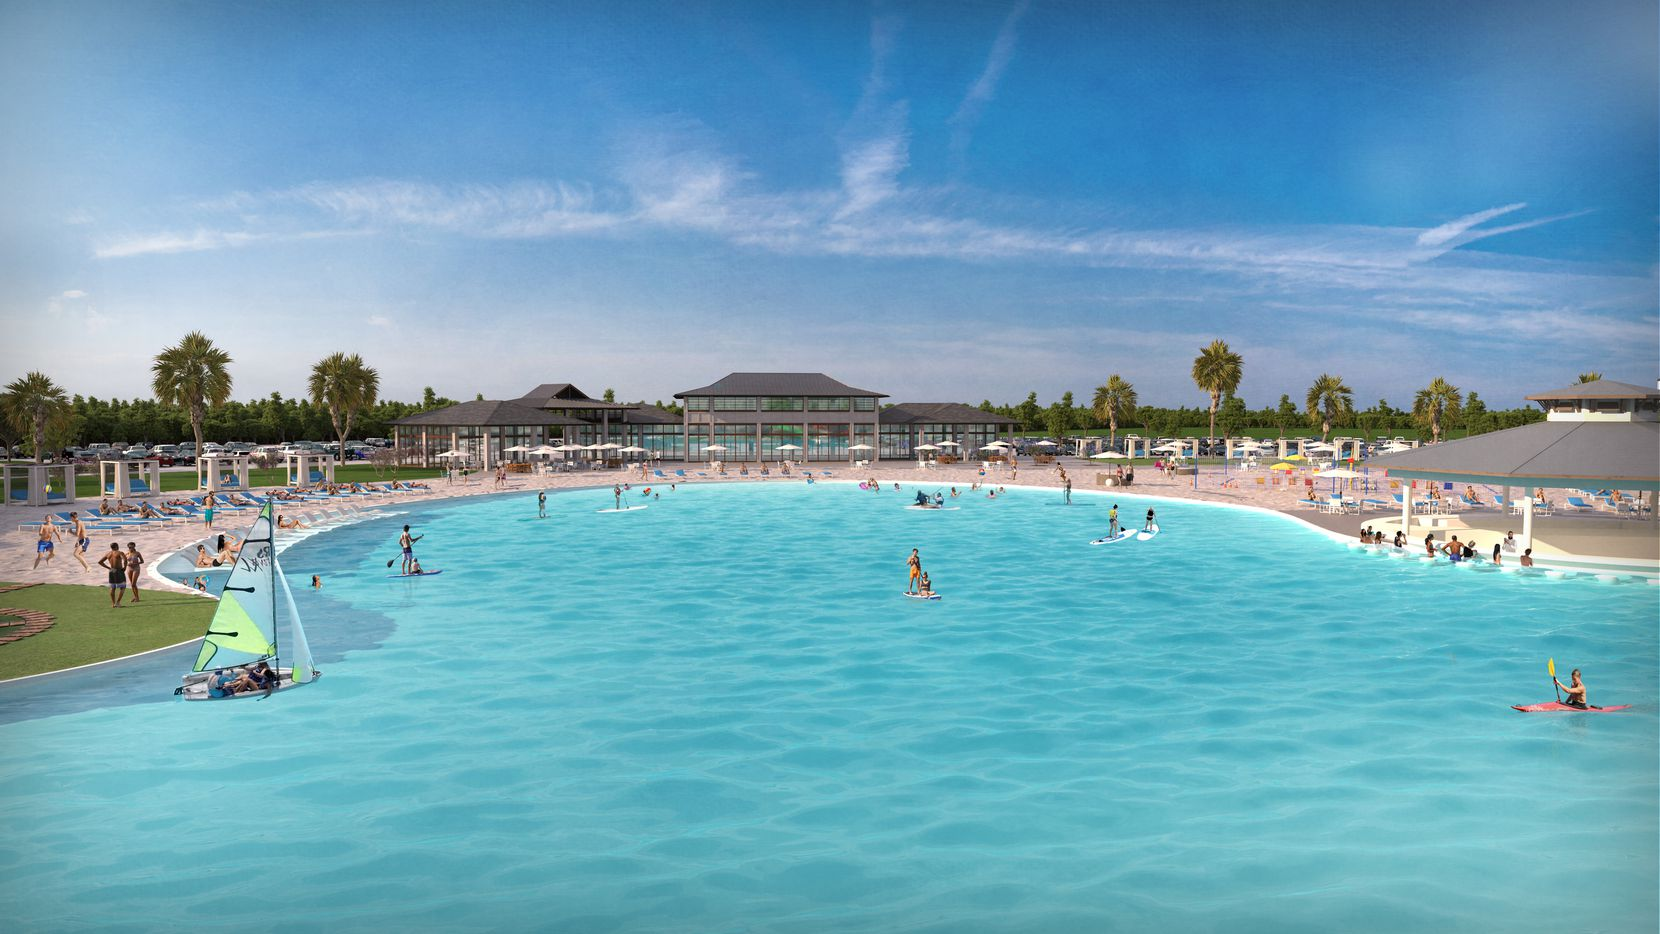 The area around the lagoon will have an event center, restaurants, retail and apartments.